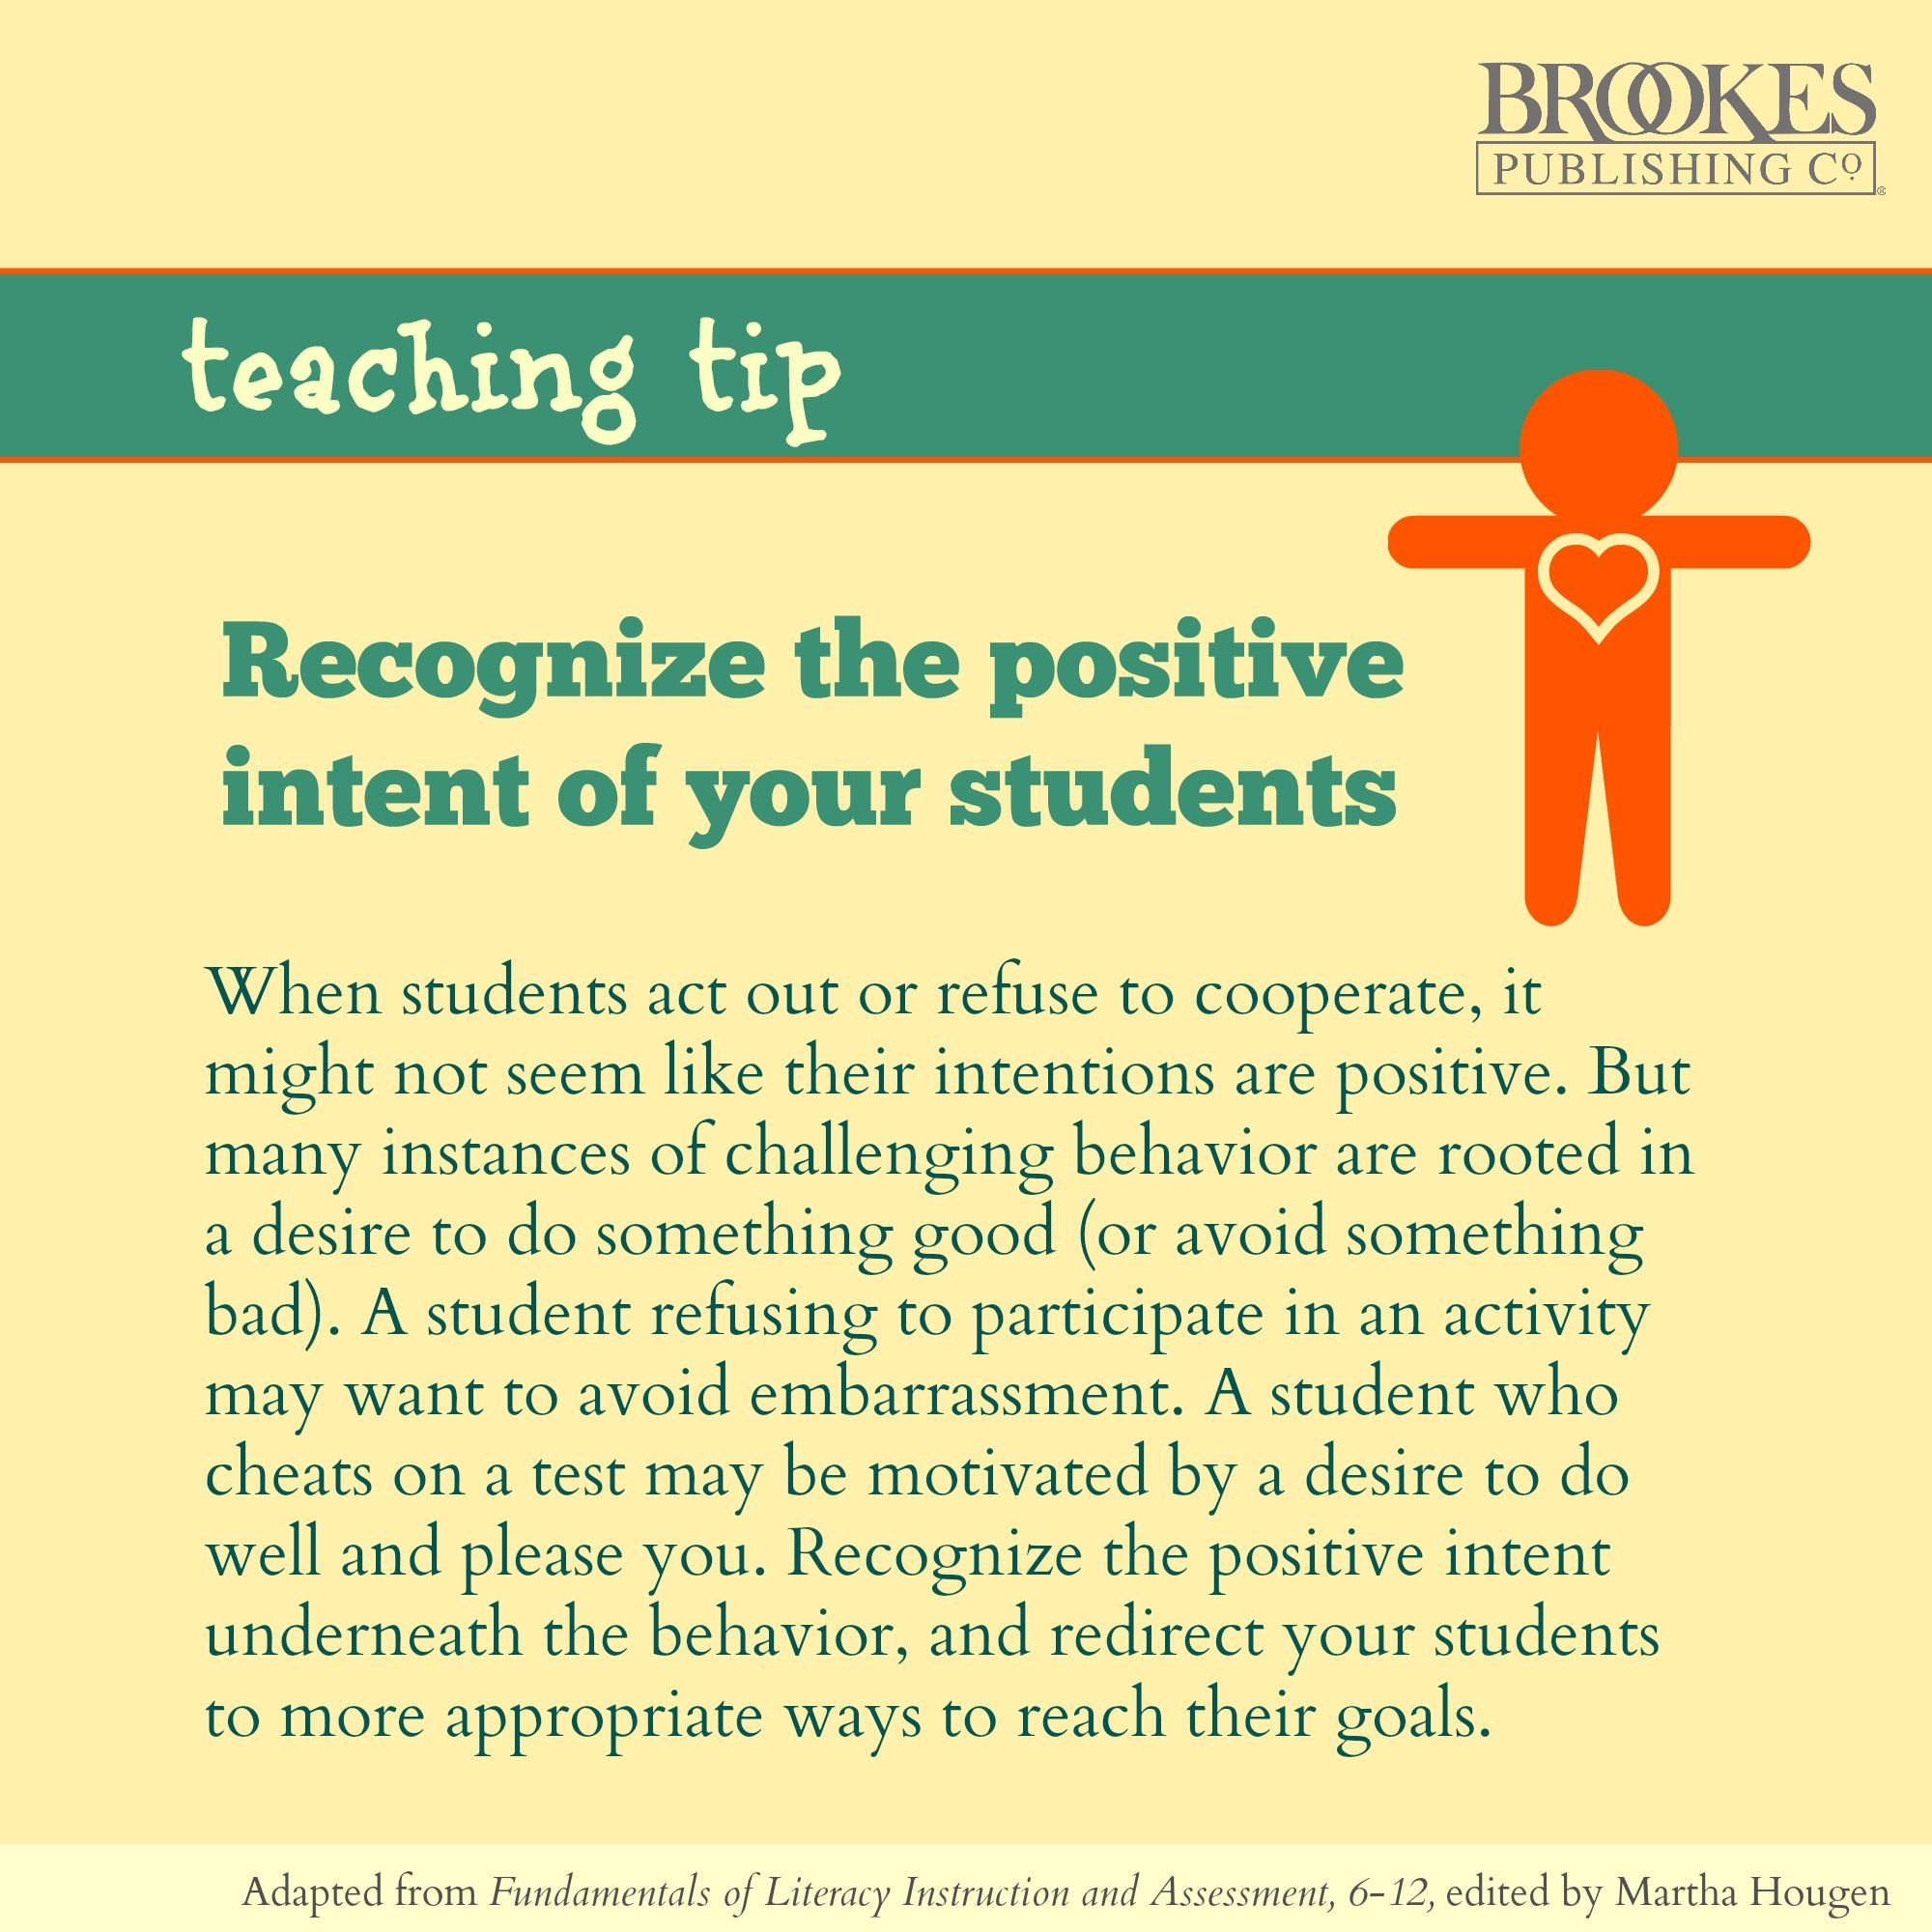 When Students Act Out Try To See The Positive Intent